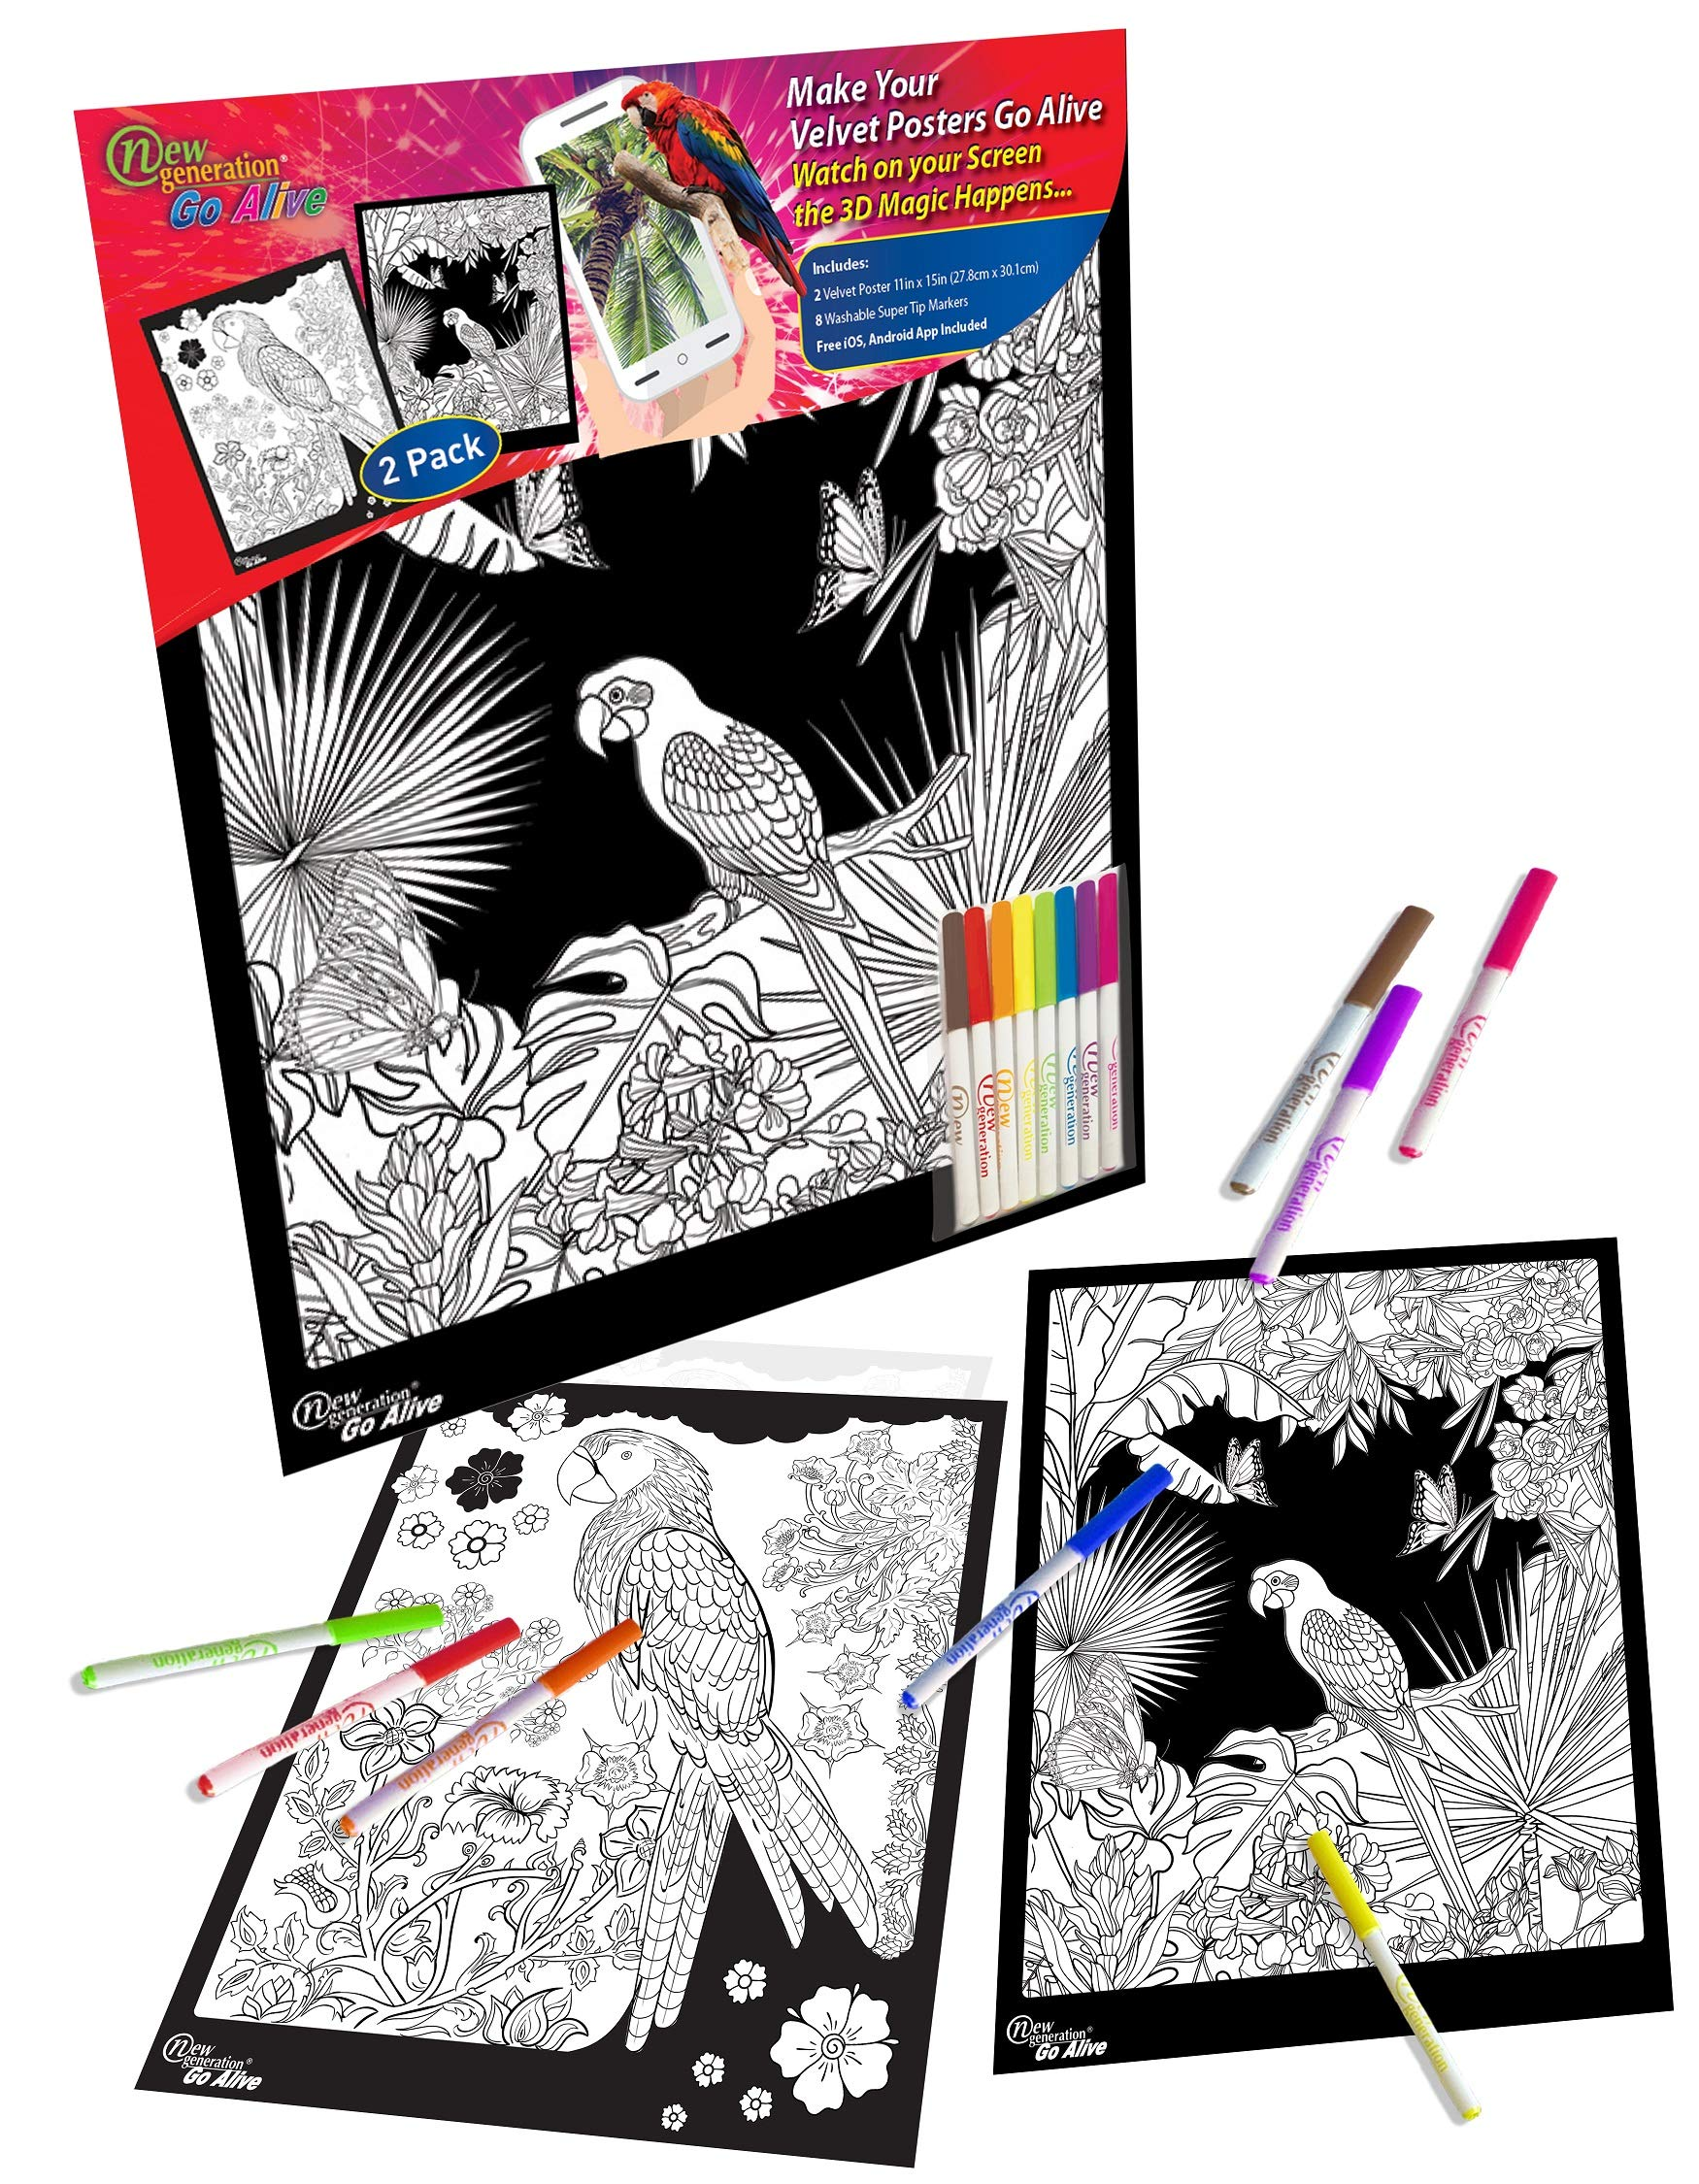 At Home Dynamic Edition - Great for Family Time Super Pack of 18 Fuzzy Velvet Coloring Posters Arts /& Crafts Care Facilities Travel All Ages Coloring: Girls, Boys, Adults, Toddlers, Teens